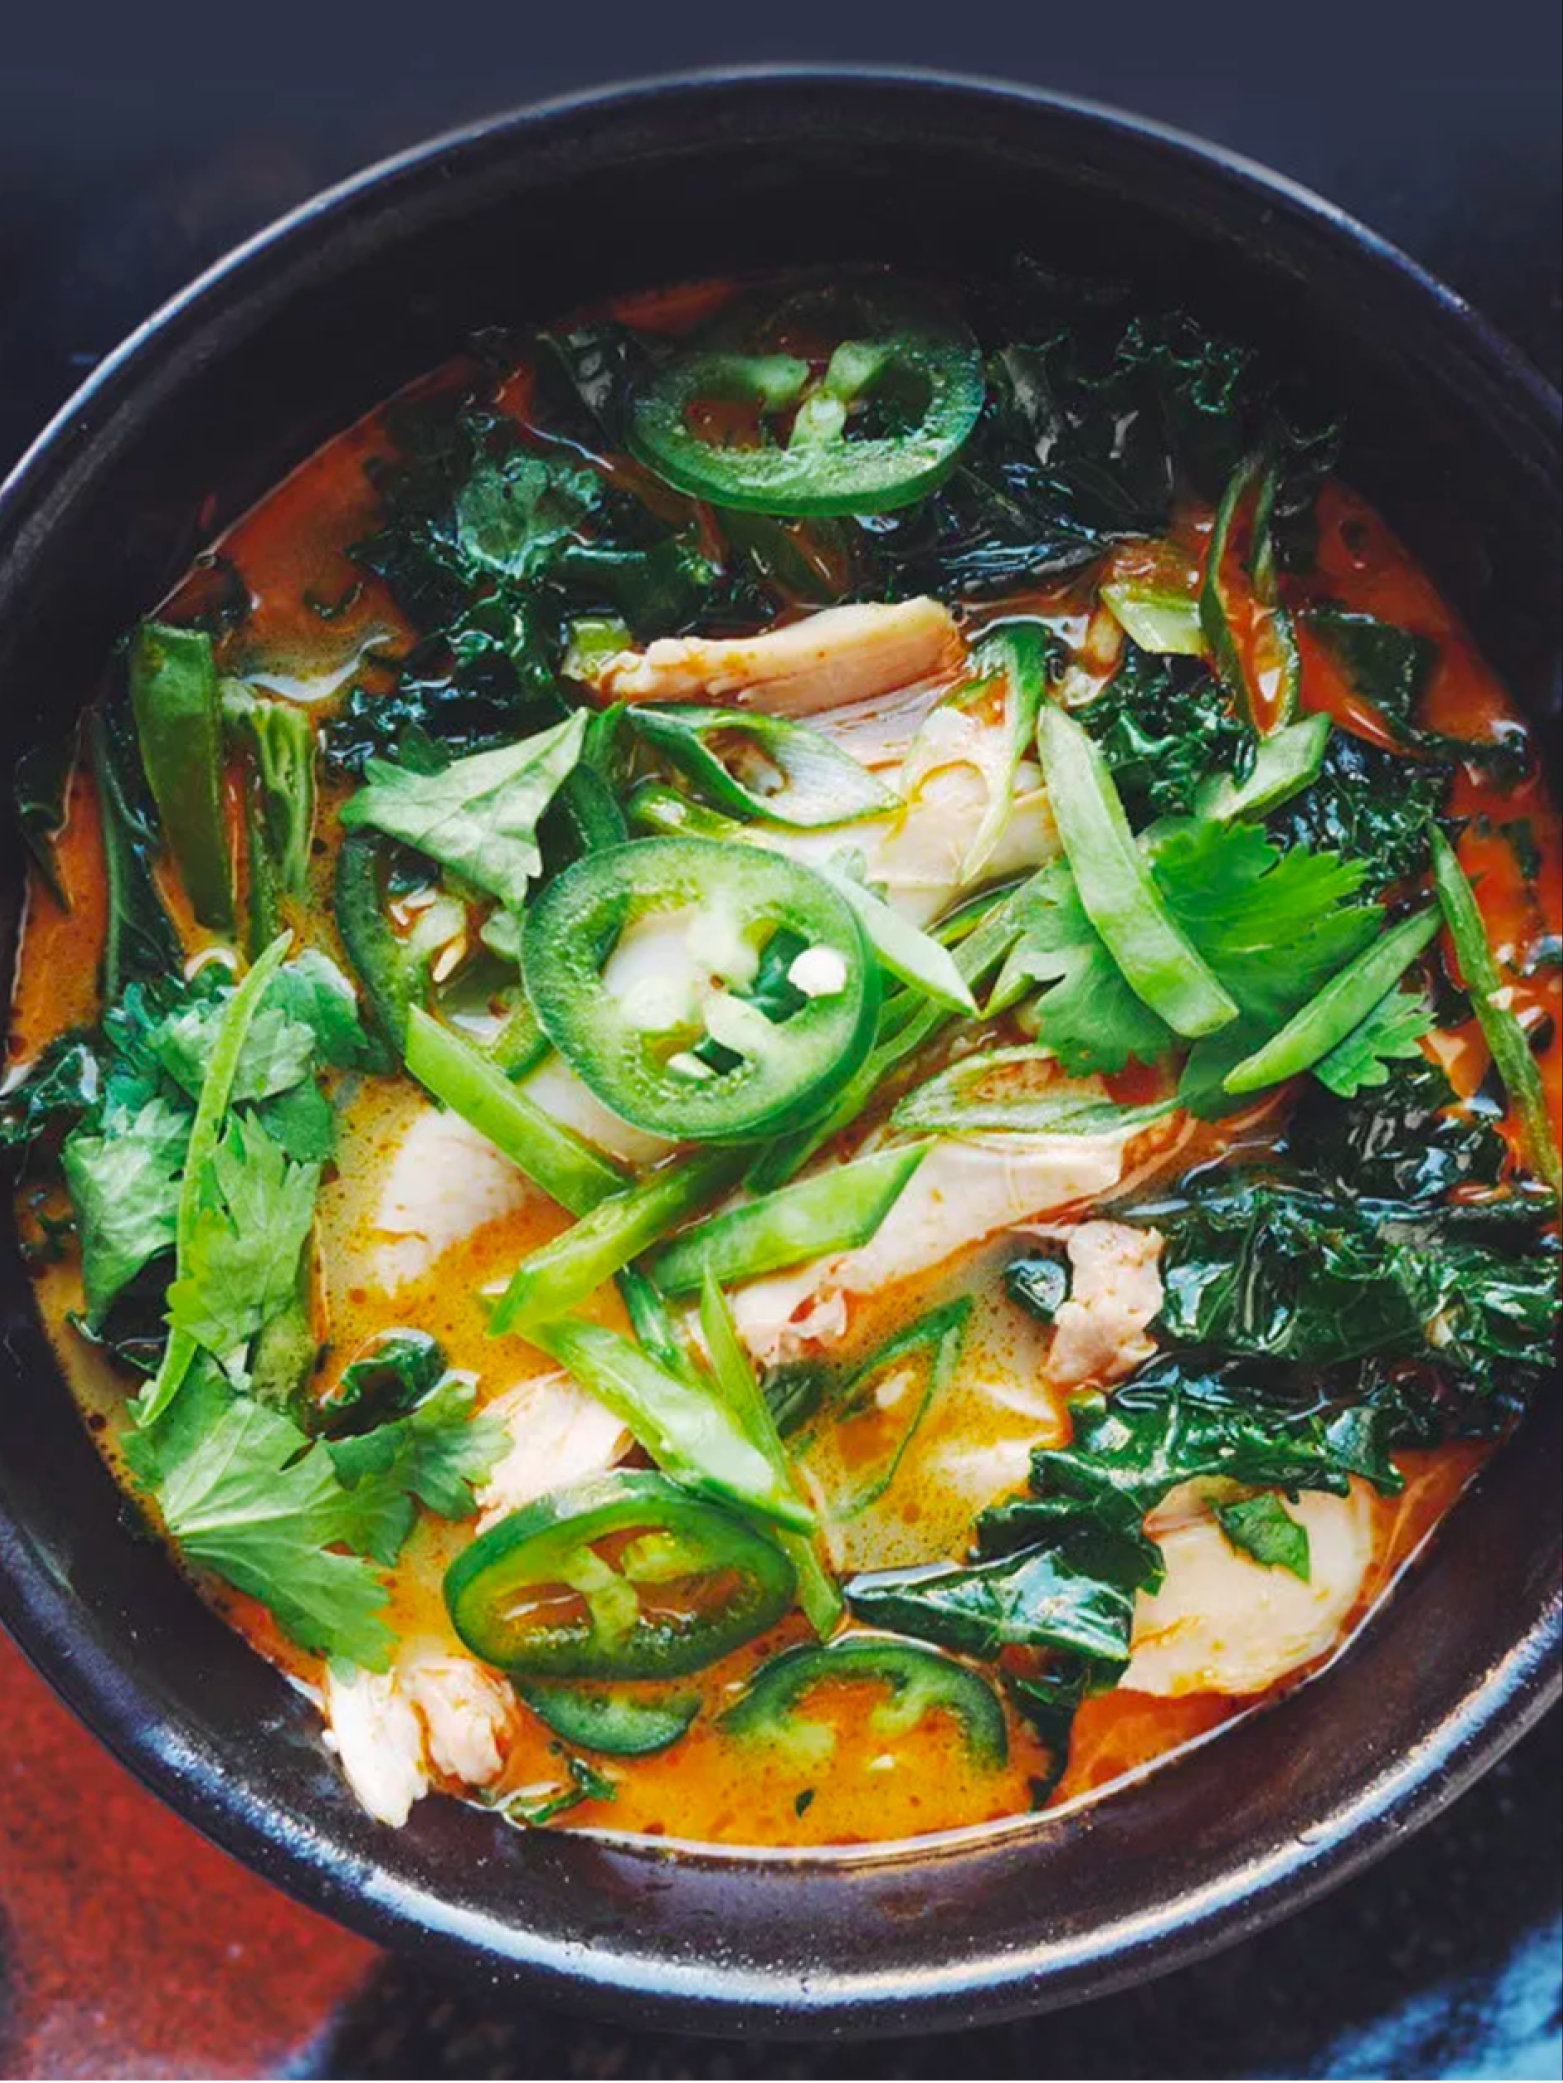 5 Insanely Delicious Chicken Soup Recipes You'll Want To Make Again And Again  Buzzfeed